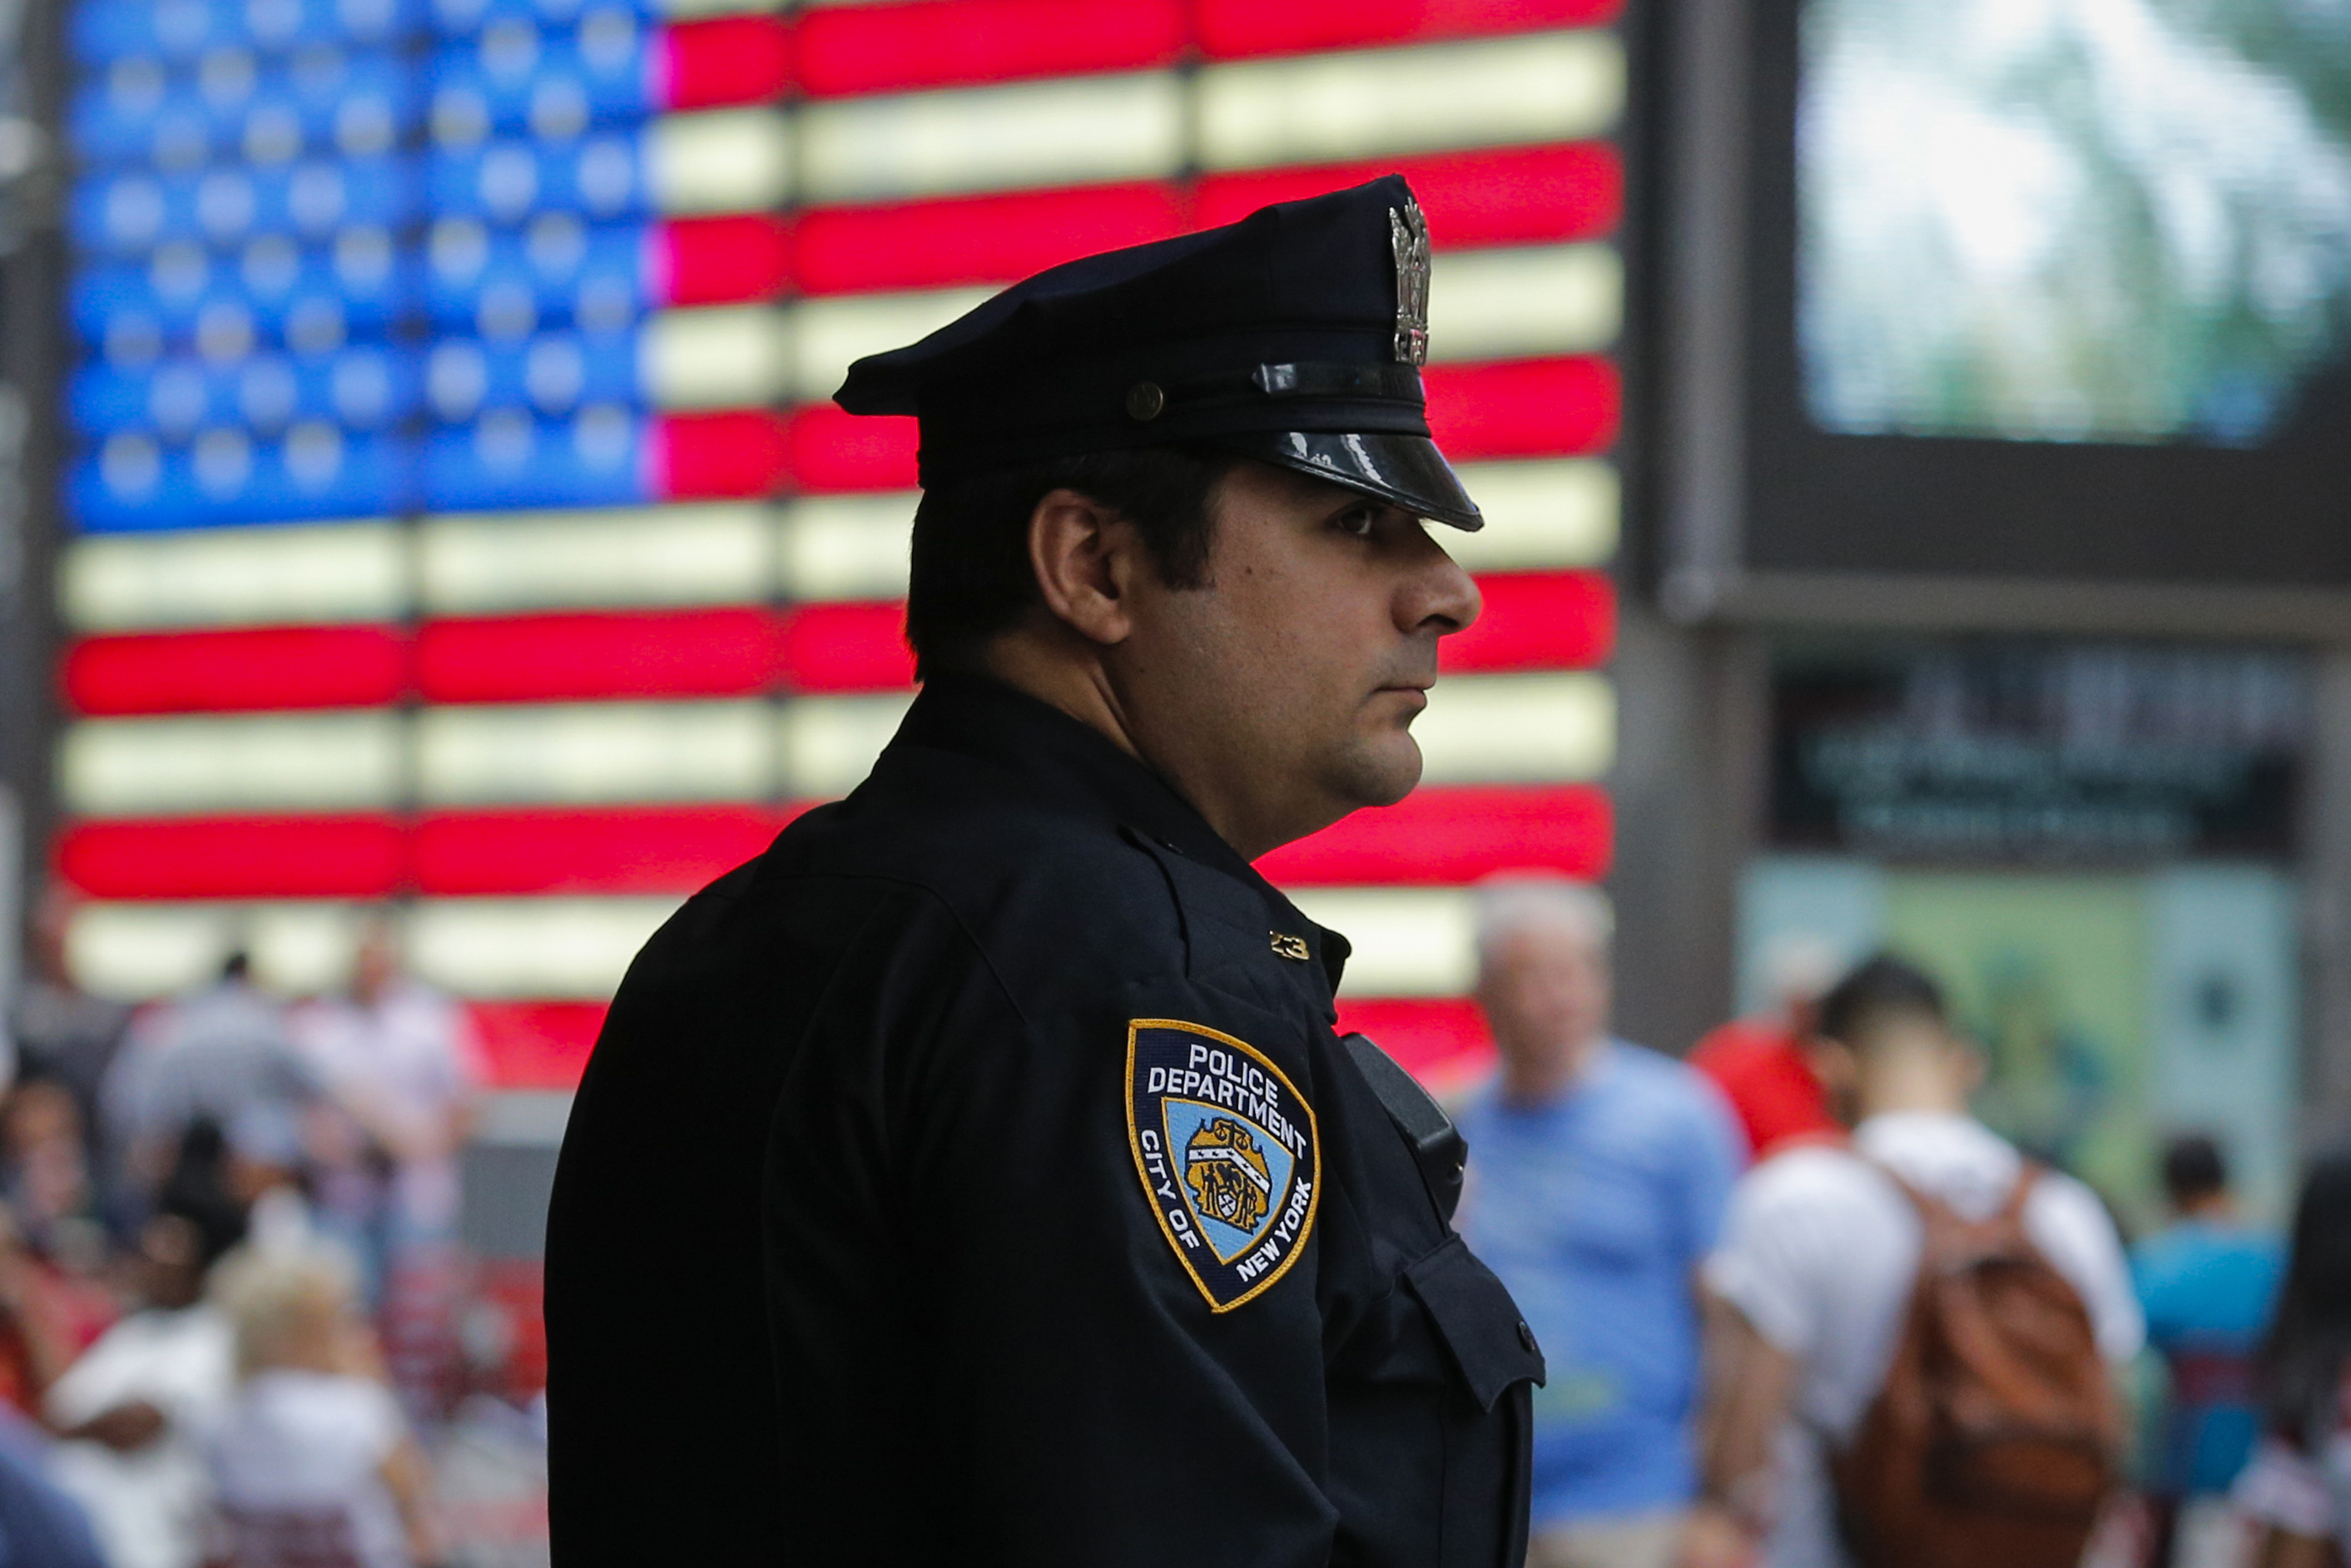 Best Time to Be a Cop in America